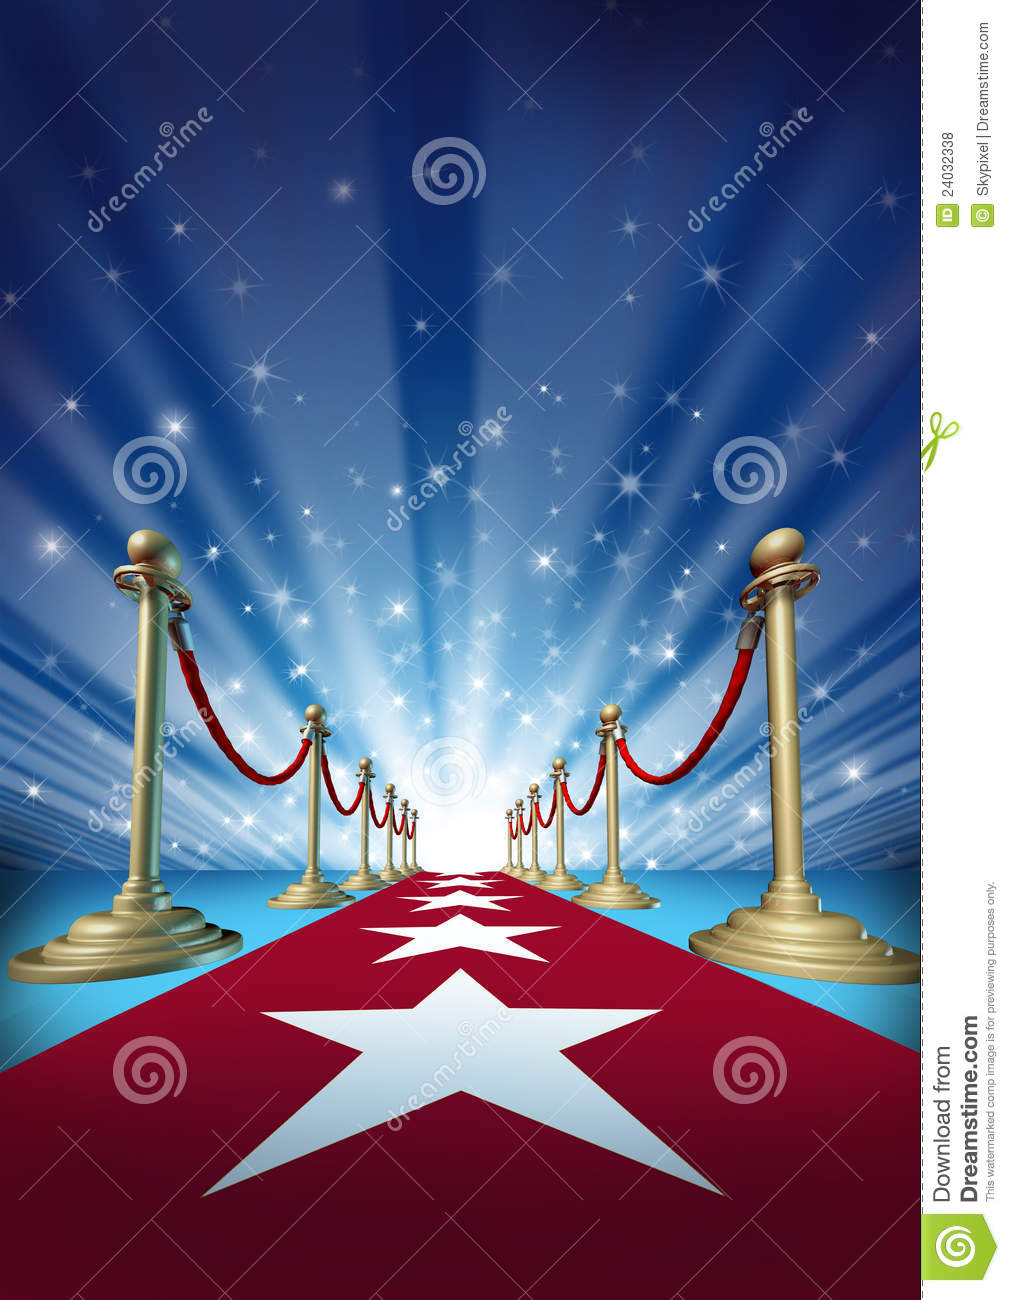 Red Carpet To Movie Stars Royalty Free Stock Photos ...